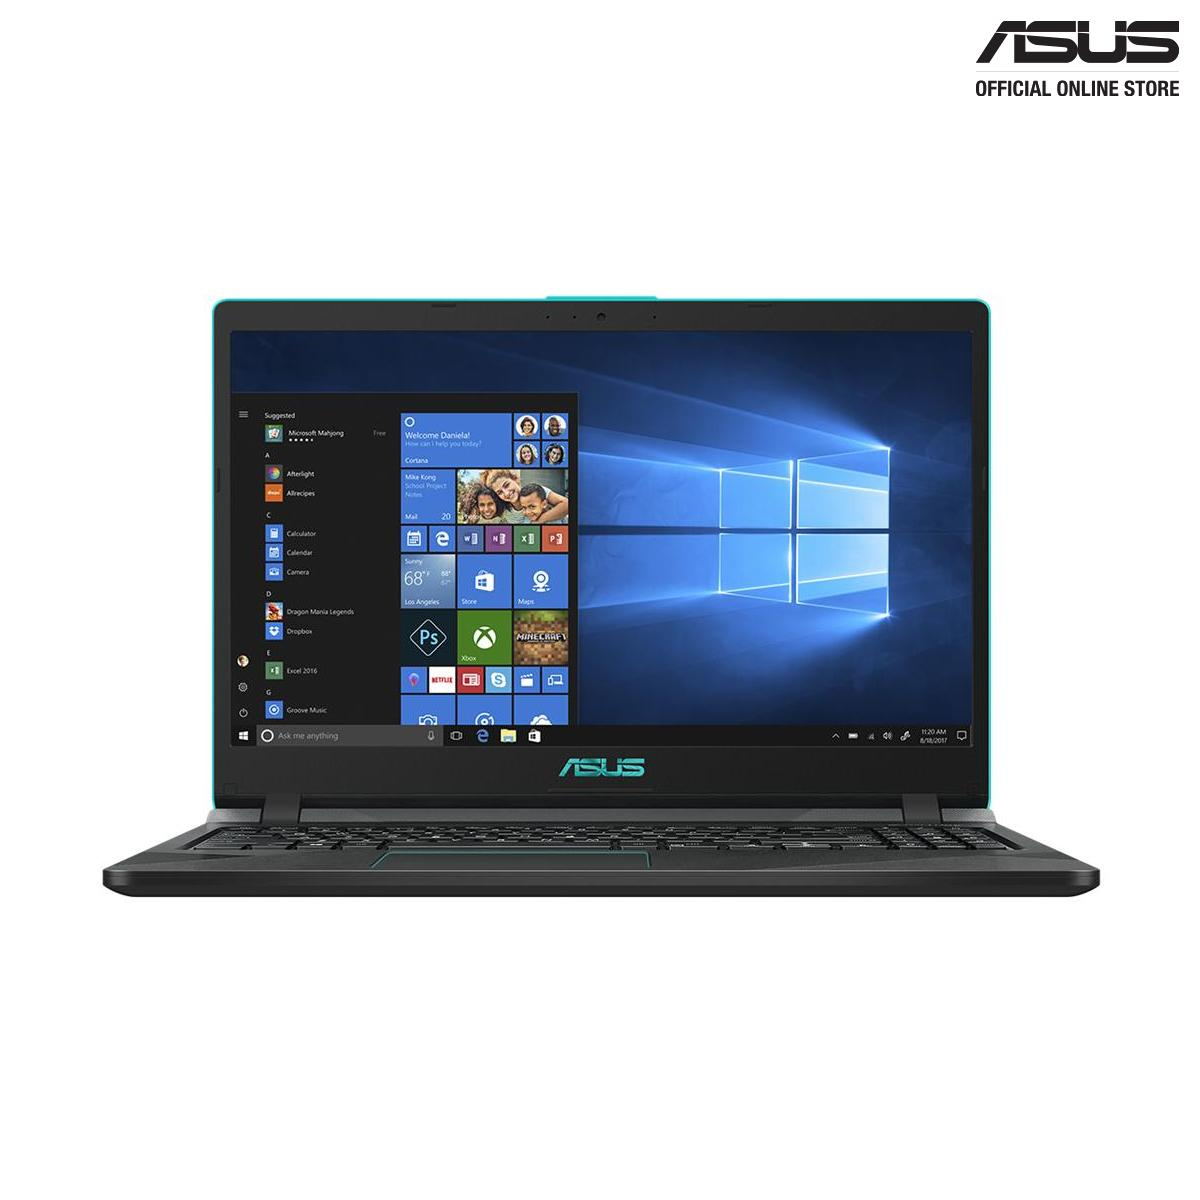 ASUS VIVOBOOK S451LN INTEL BLUETOOTH WINDOWS 7 DRIVERS DOWNLOAD (2019)